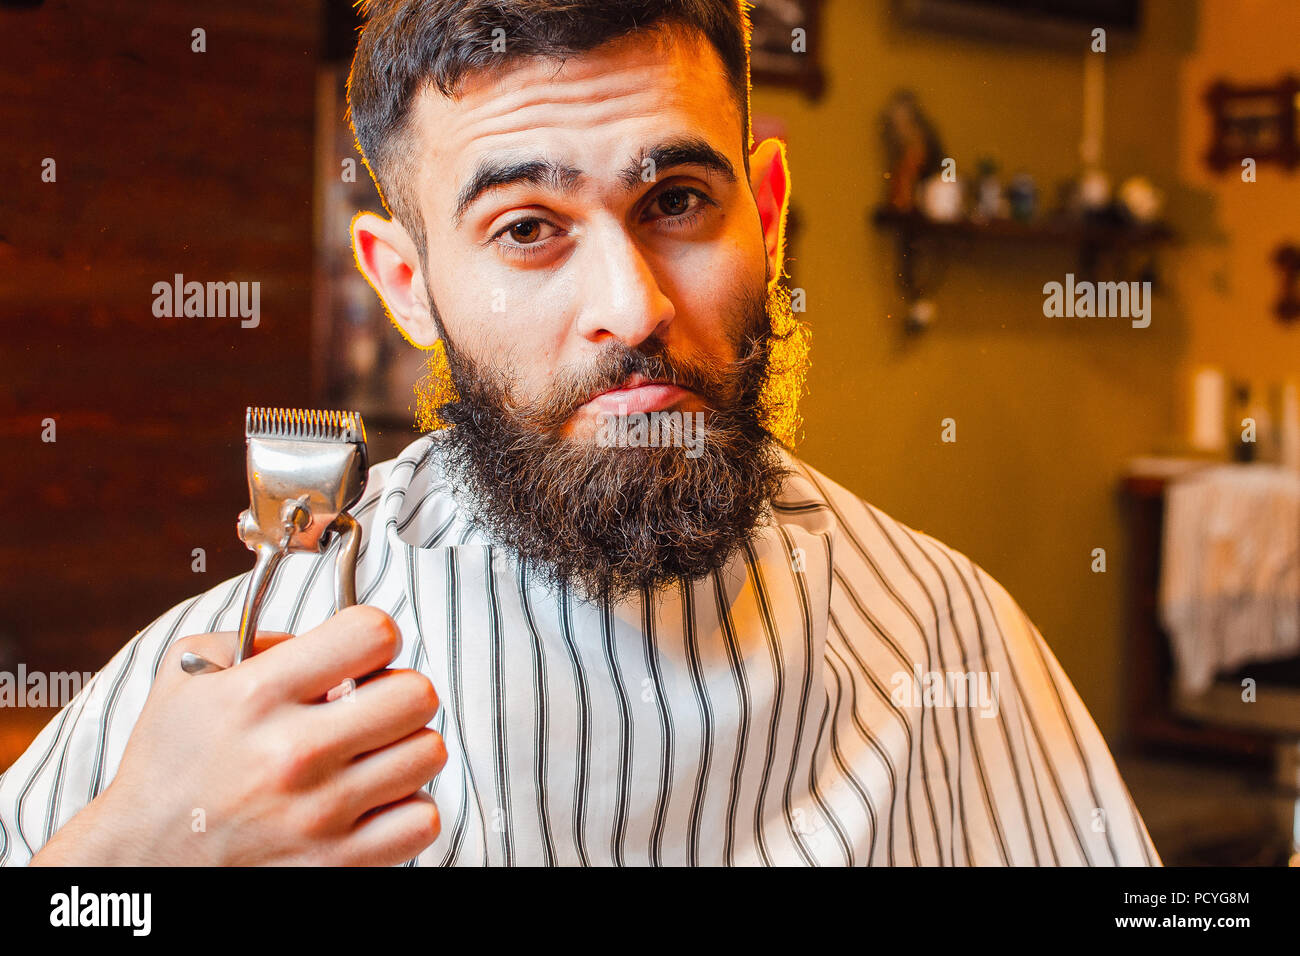 A young handsome guy with a beard and mustache is holding vintage hair clips in his right hand. Men's hair salon. - Stock Image